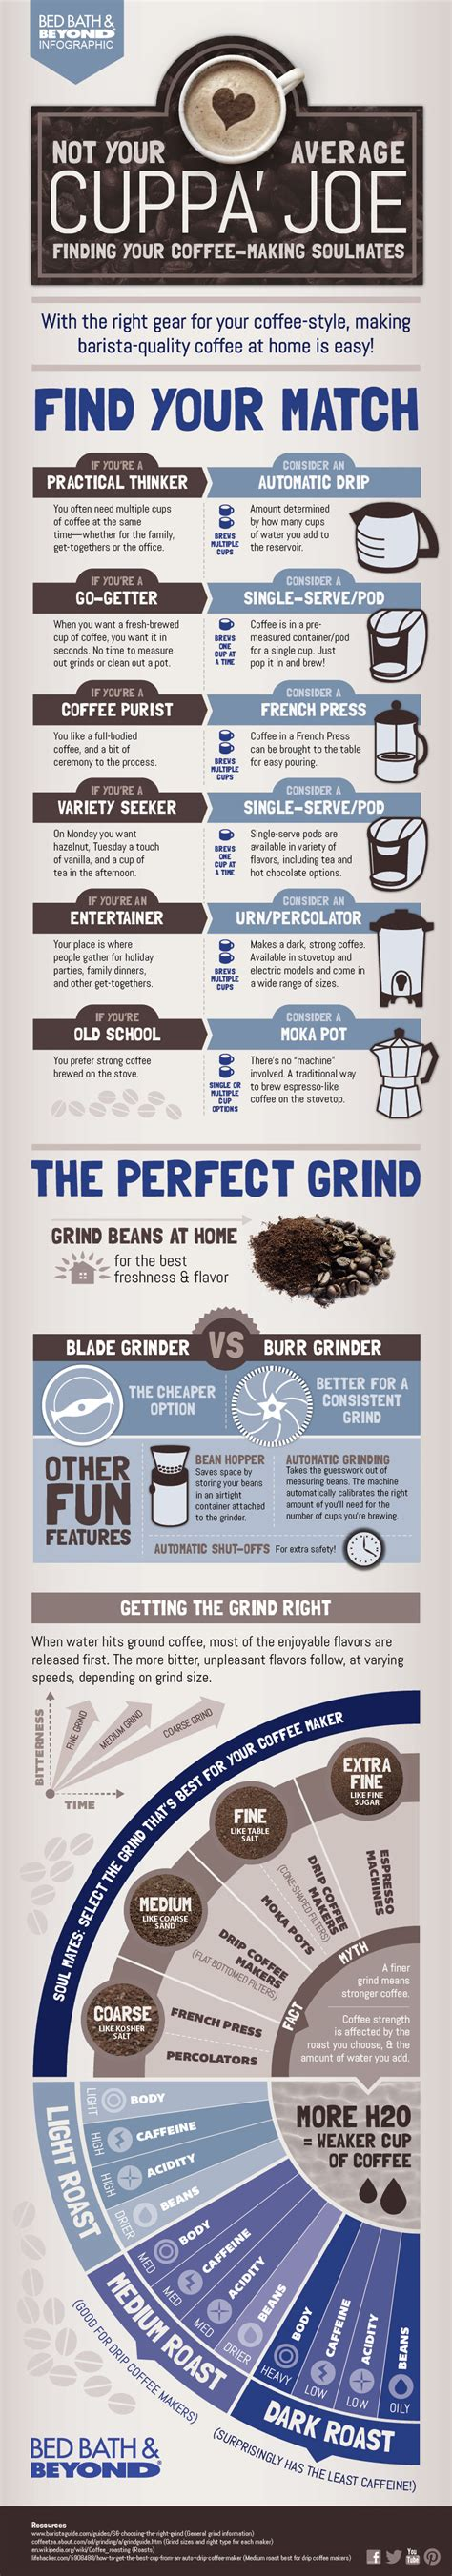 Find Your Perfect Coffee Match [Infographic]   Above & BeyondAbove & Beyond   Above & Beyond